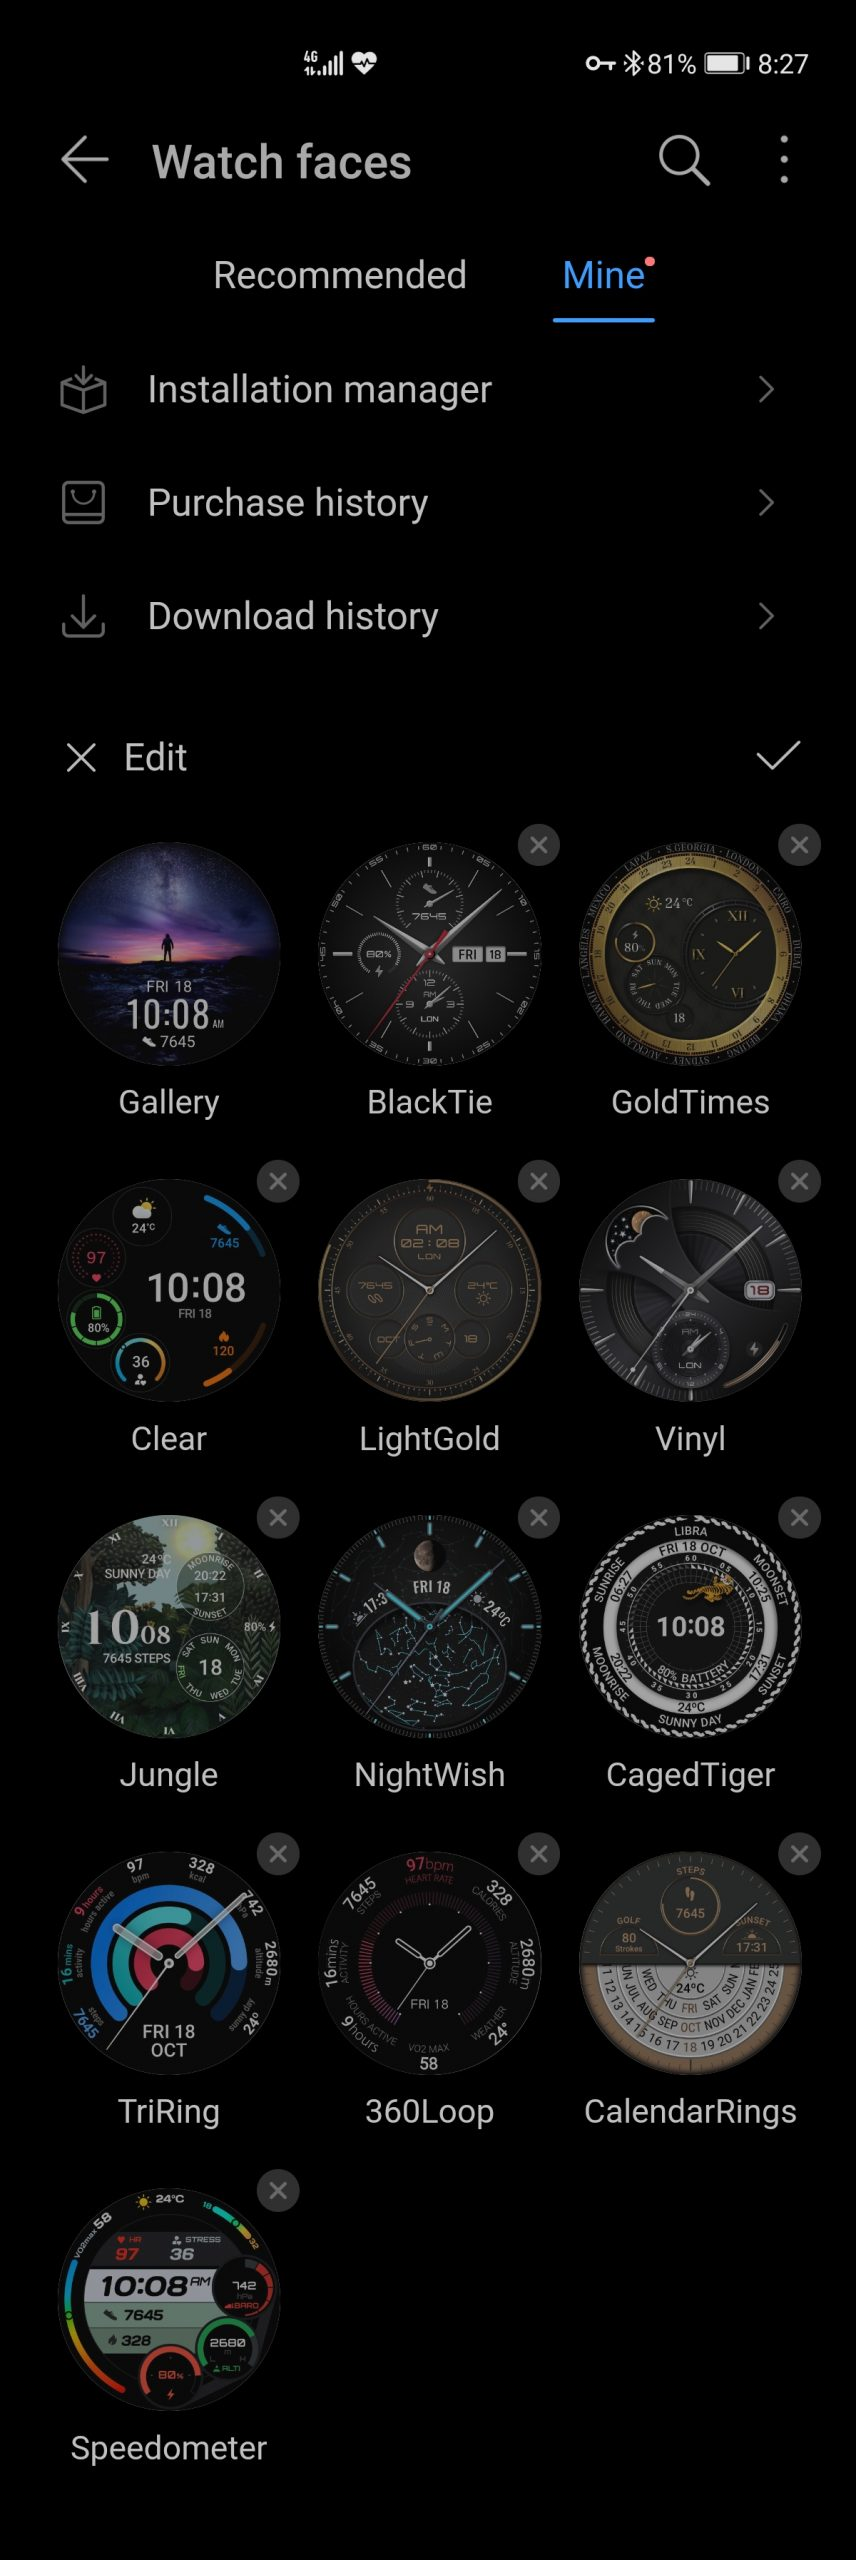 Tap Watch faces